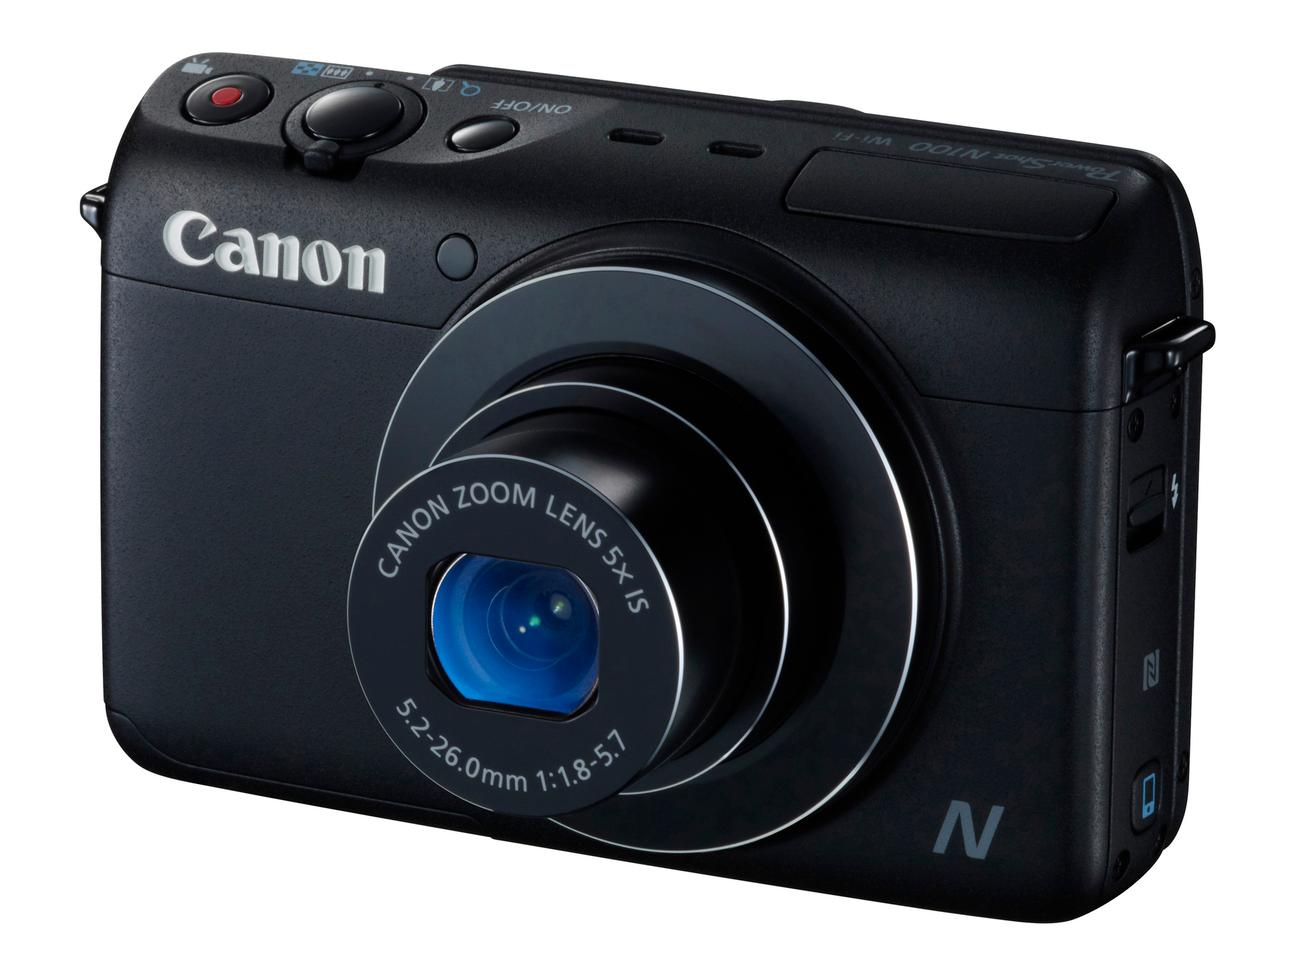 The Canon PowerShot N100 boasts a 12.1-megapixel CMOS sensor, Canon's DIGIC 6 image processor, and a 5x optical zoom